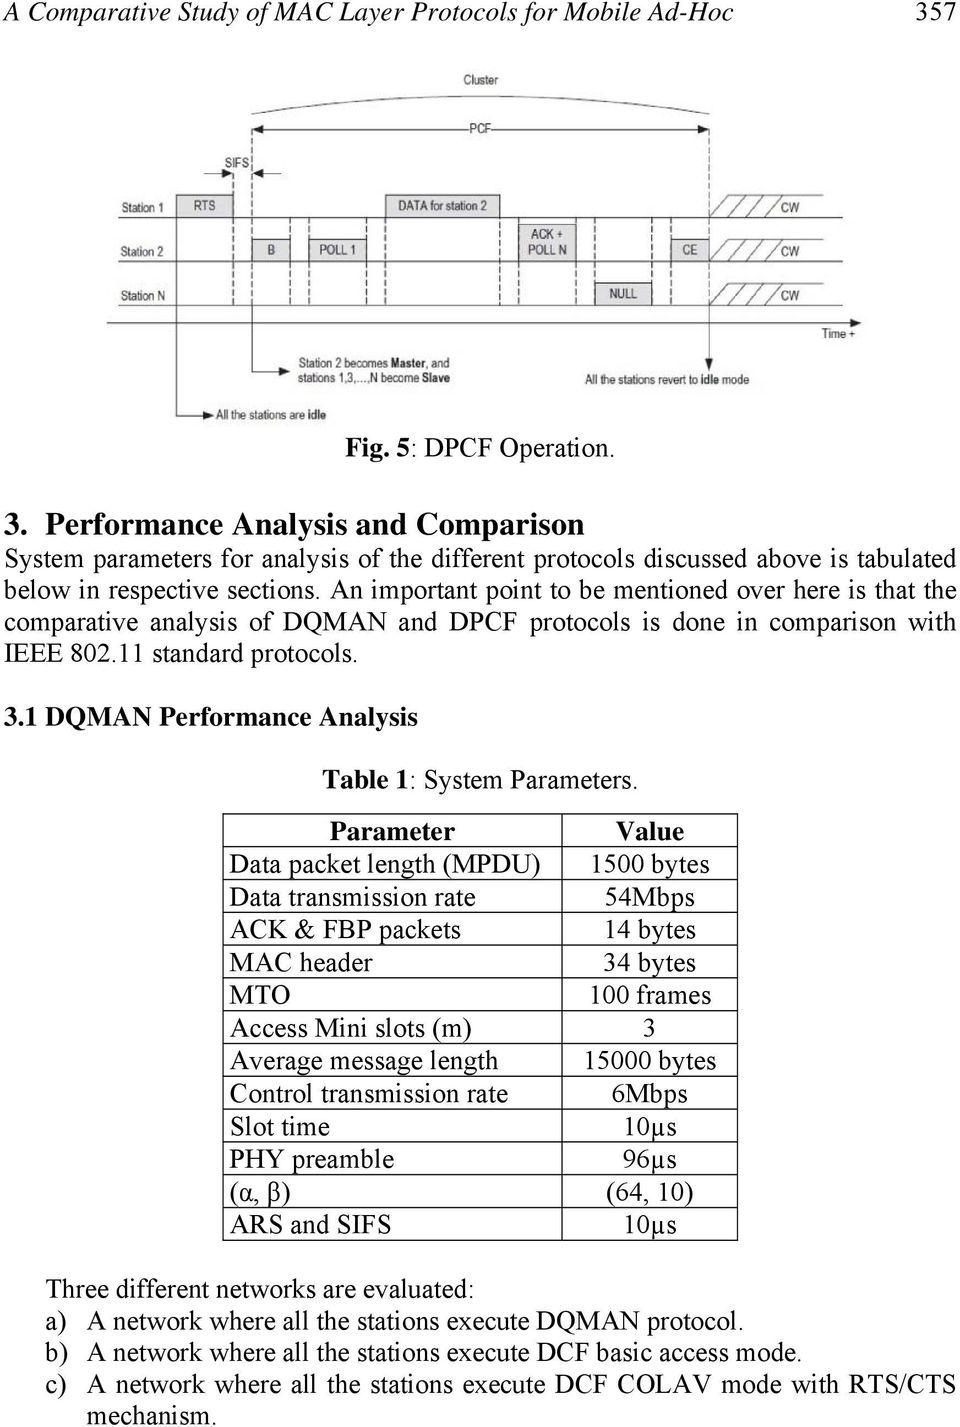 An important point to be mentioned over here is that the comparative analysis of DQMAN and DPCF protocols is done in comparison with IEEE 802.11 standard protocols. 3.